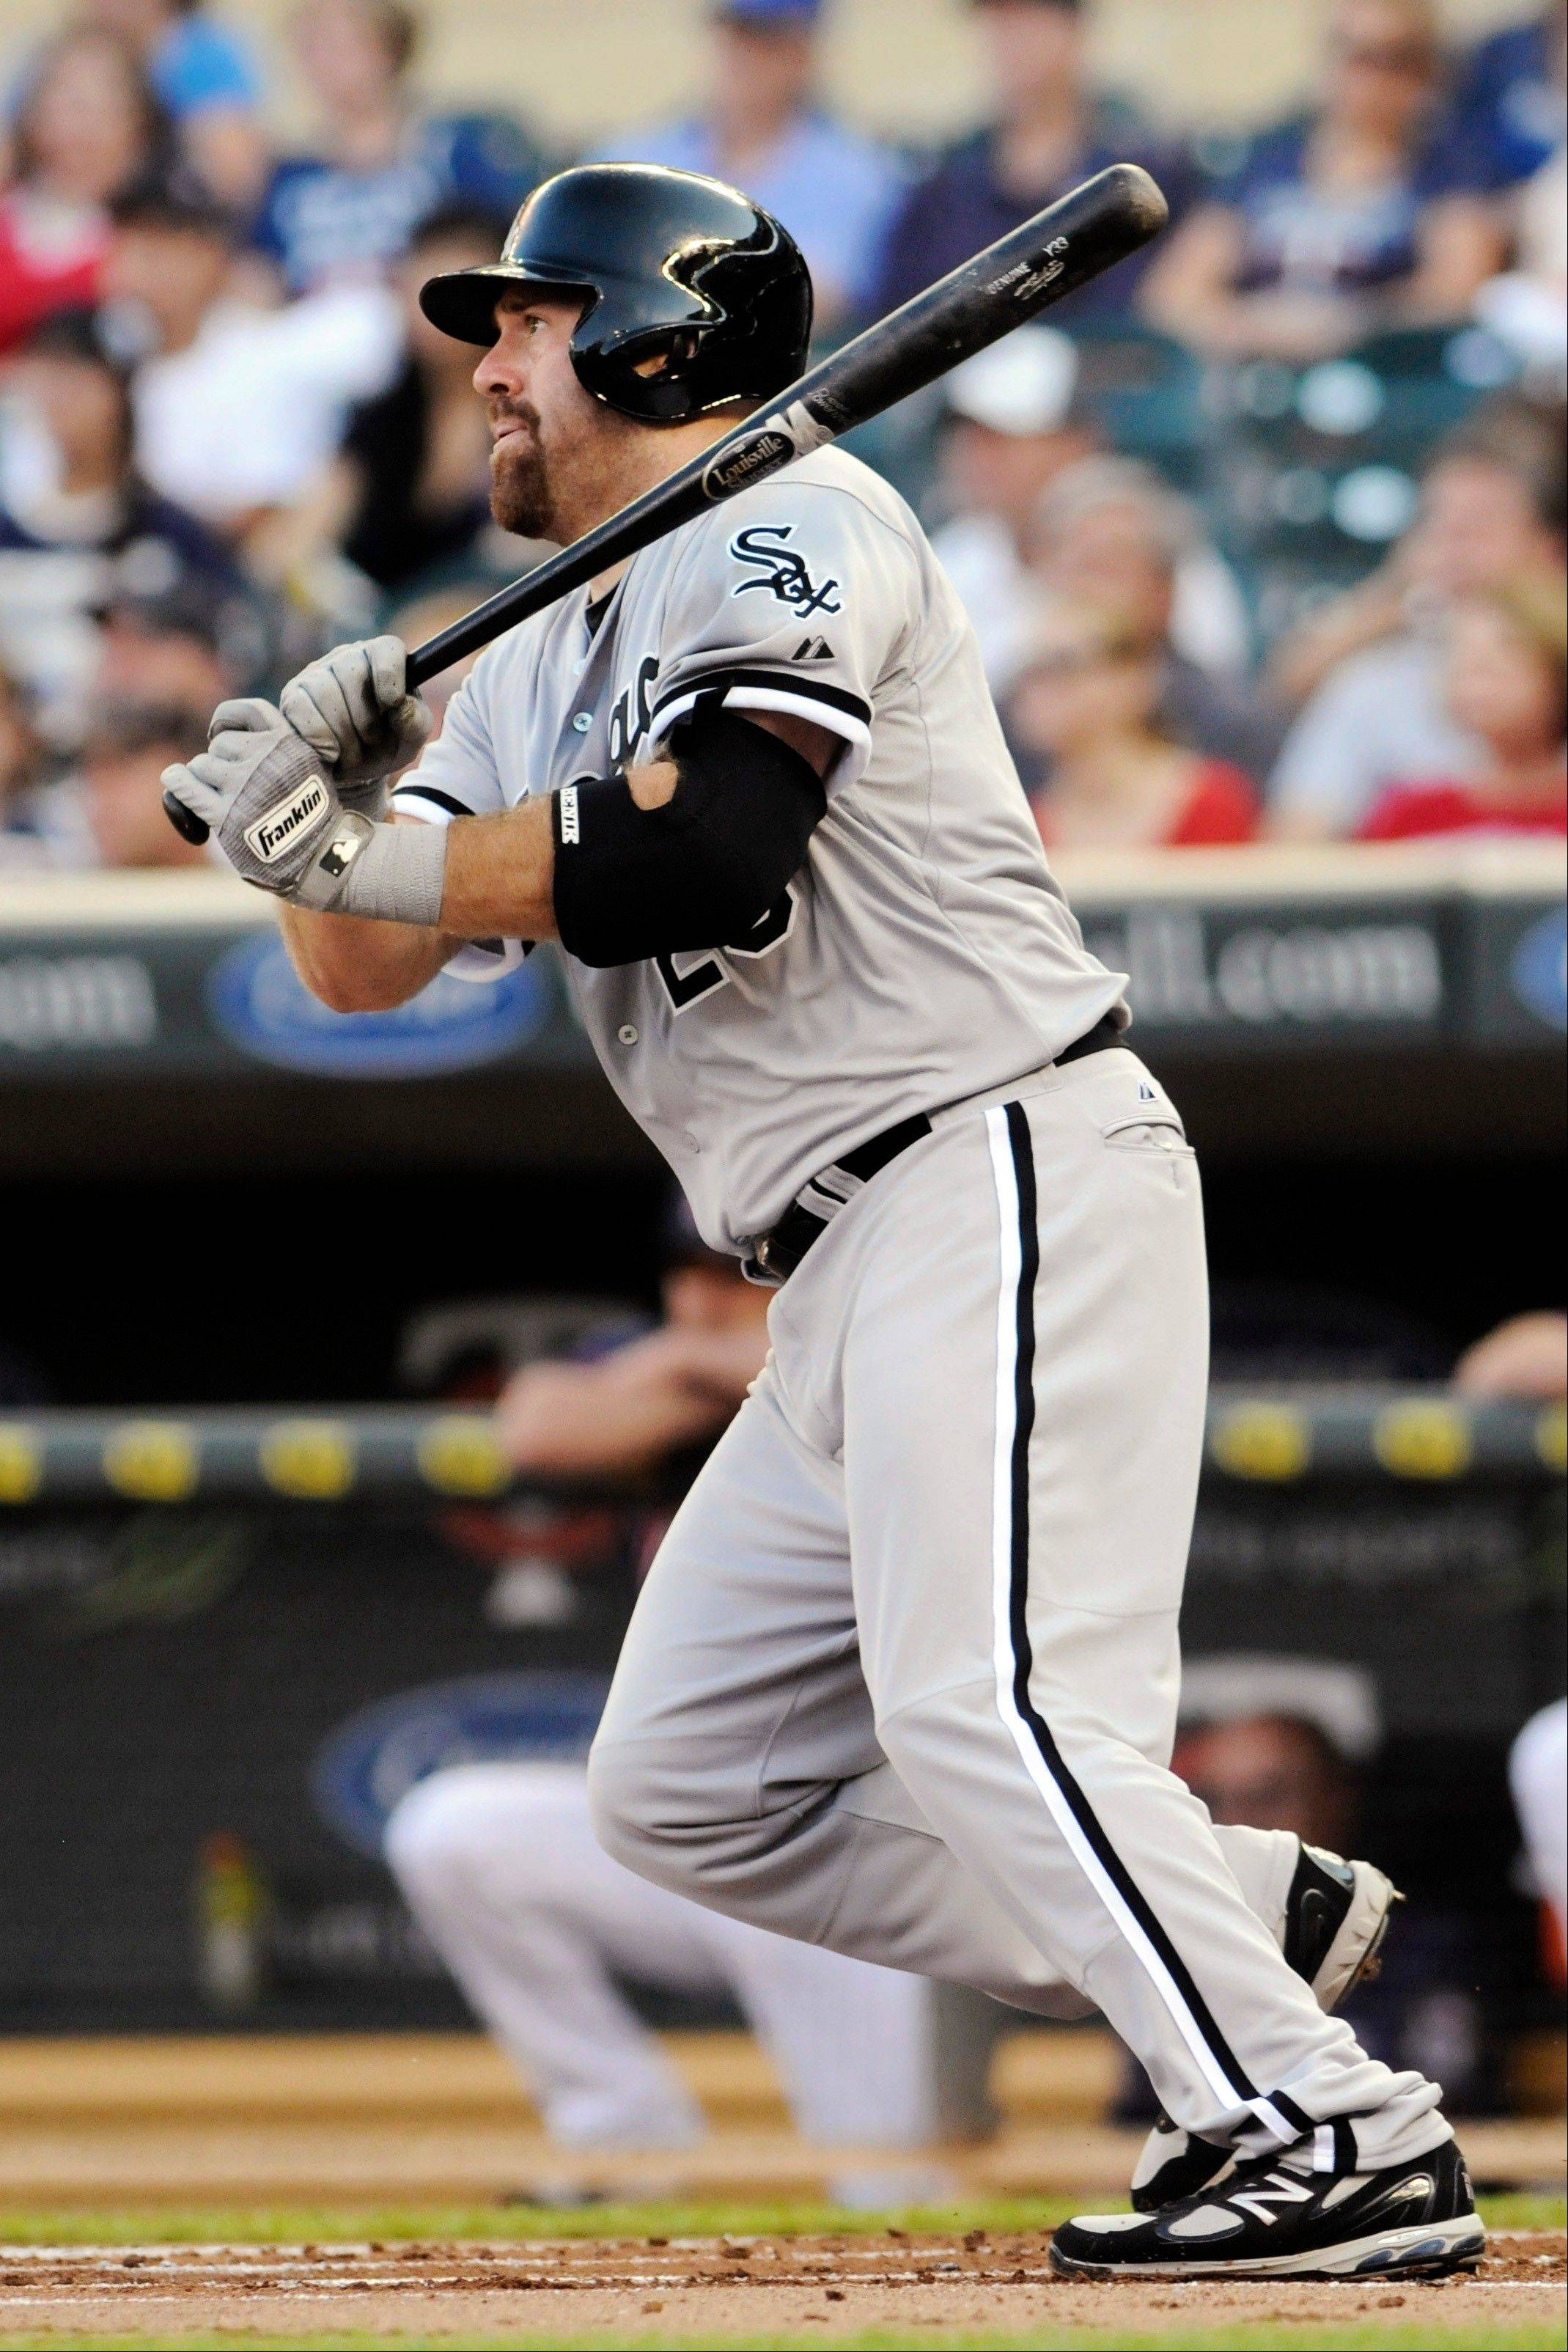 The deal for third baseman Kevin Youkilis was a good one, says Chris Rongey, because the White Sox didn't have to give up a top pitching prospect or a reliever off the 25-man squad. The White Sox, Rongey contends, will need every pitcher they have this season.